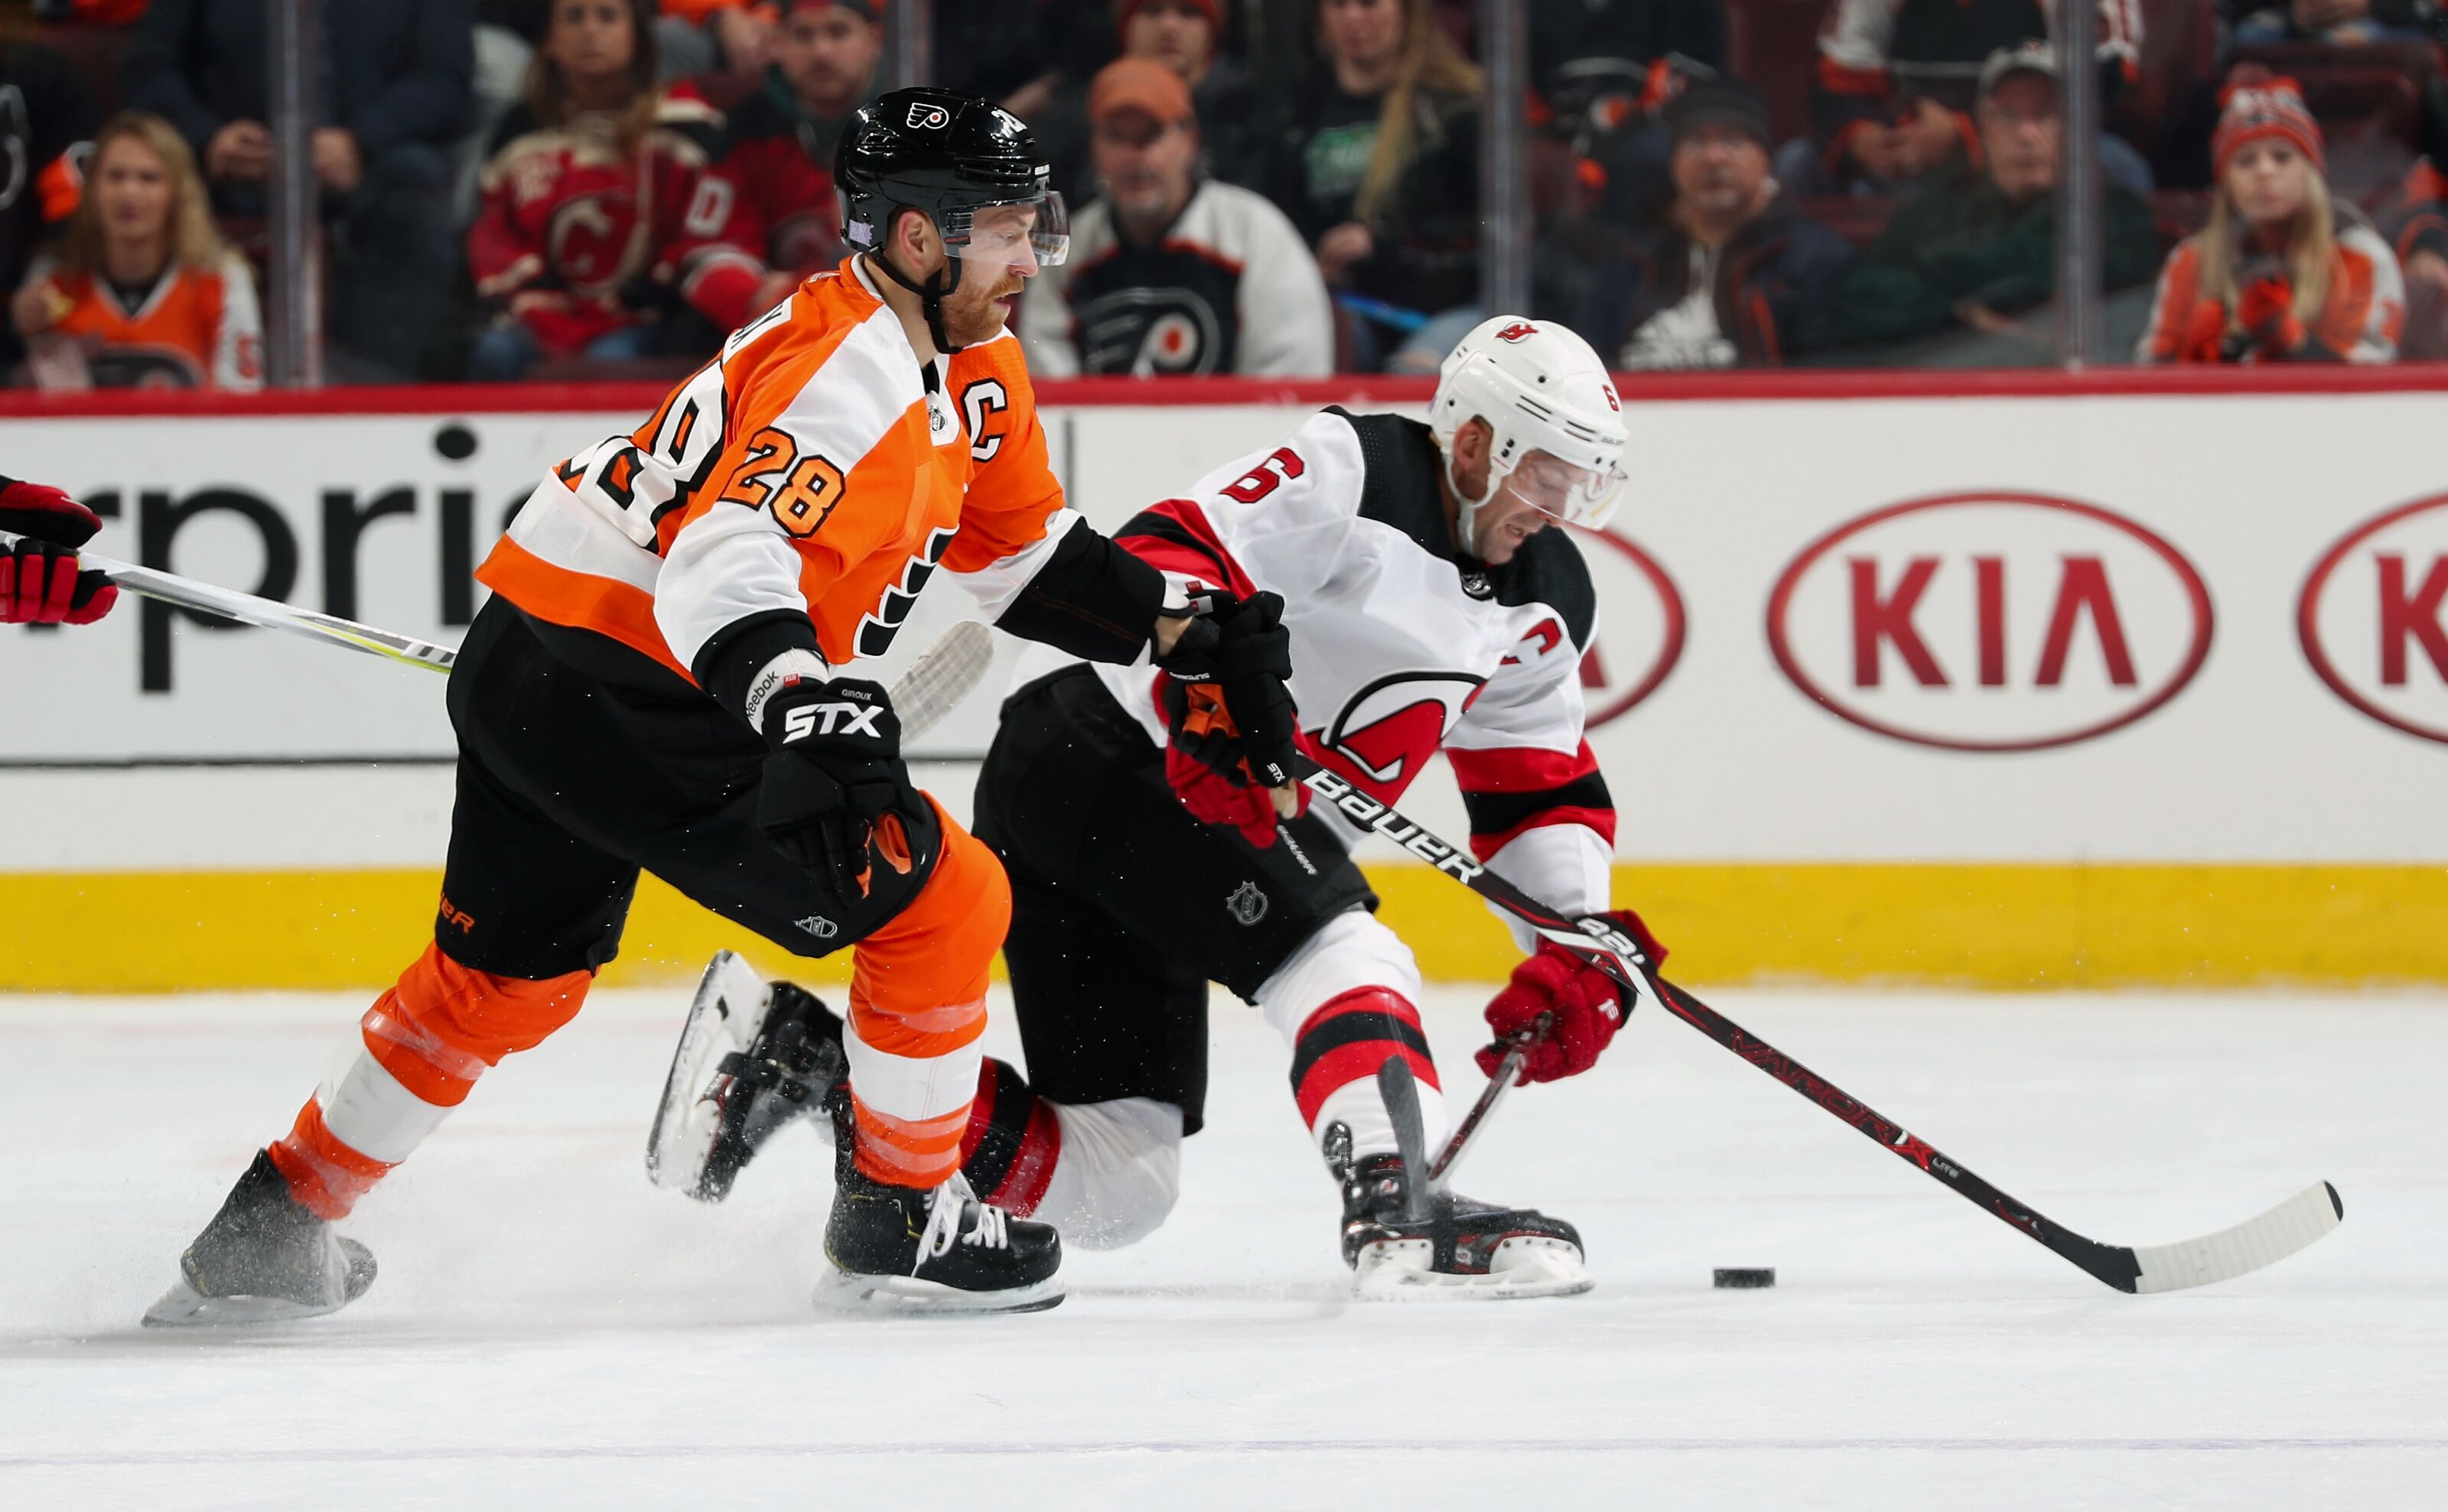 New Jersey Devils Can't Rely On Andy Greene In Sami Vatanen's Absence